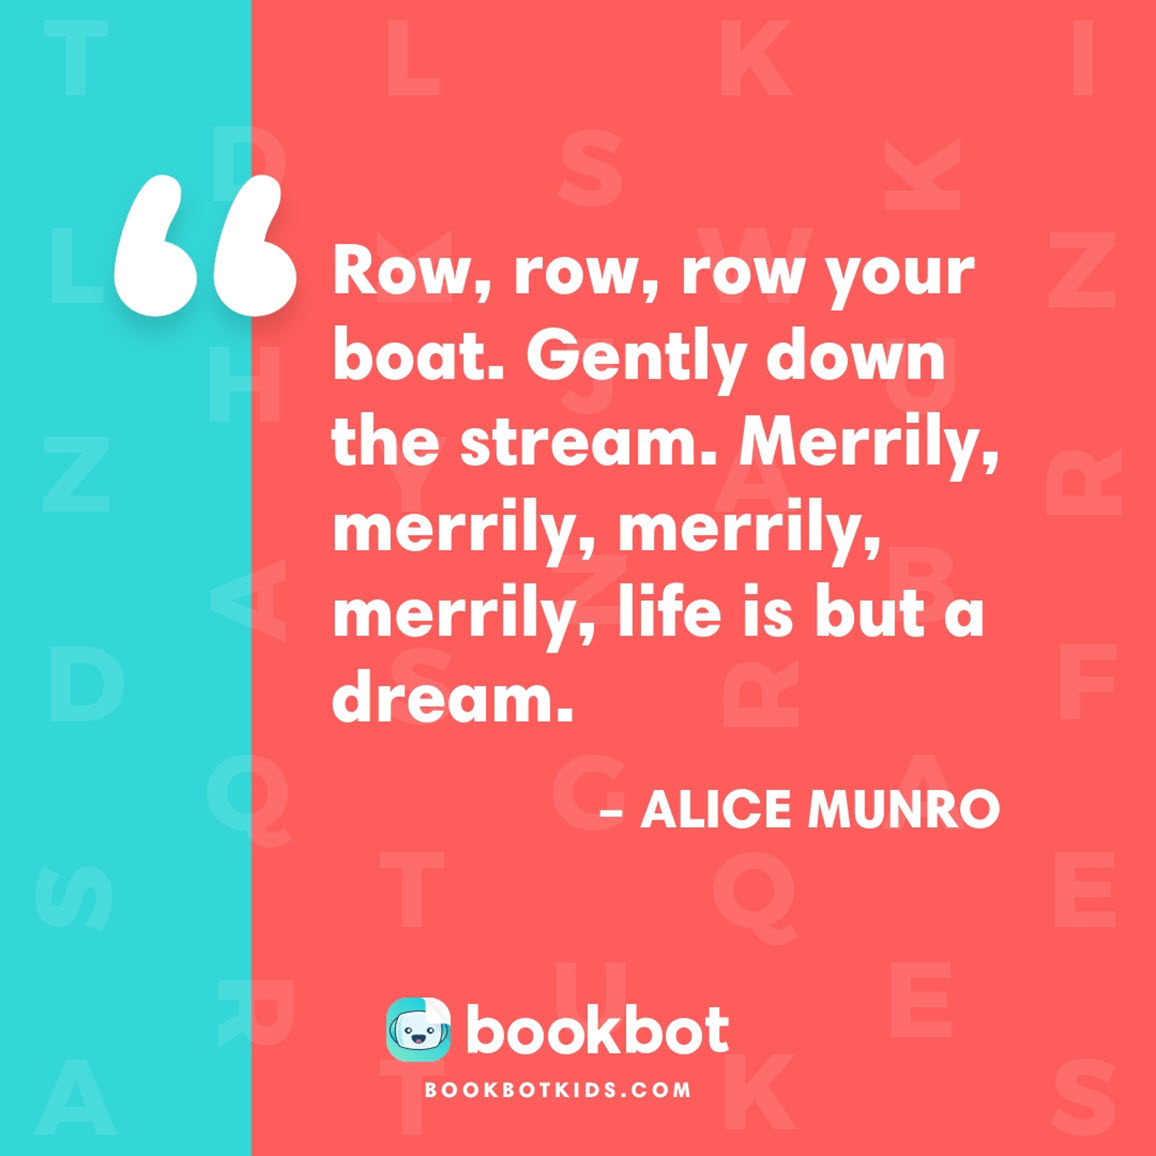 Row, row, row your boat. Gently down the stream. Merrily, merrily, merrily, merrily, life is but a dream. – Alice Munro